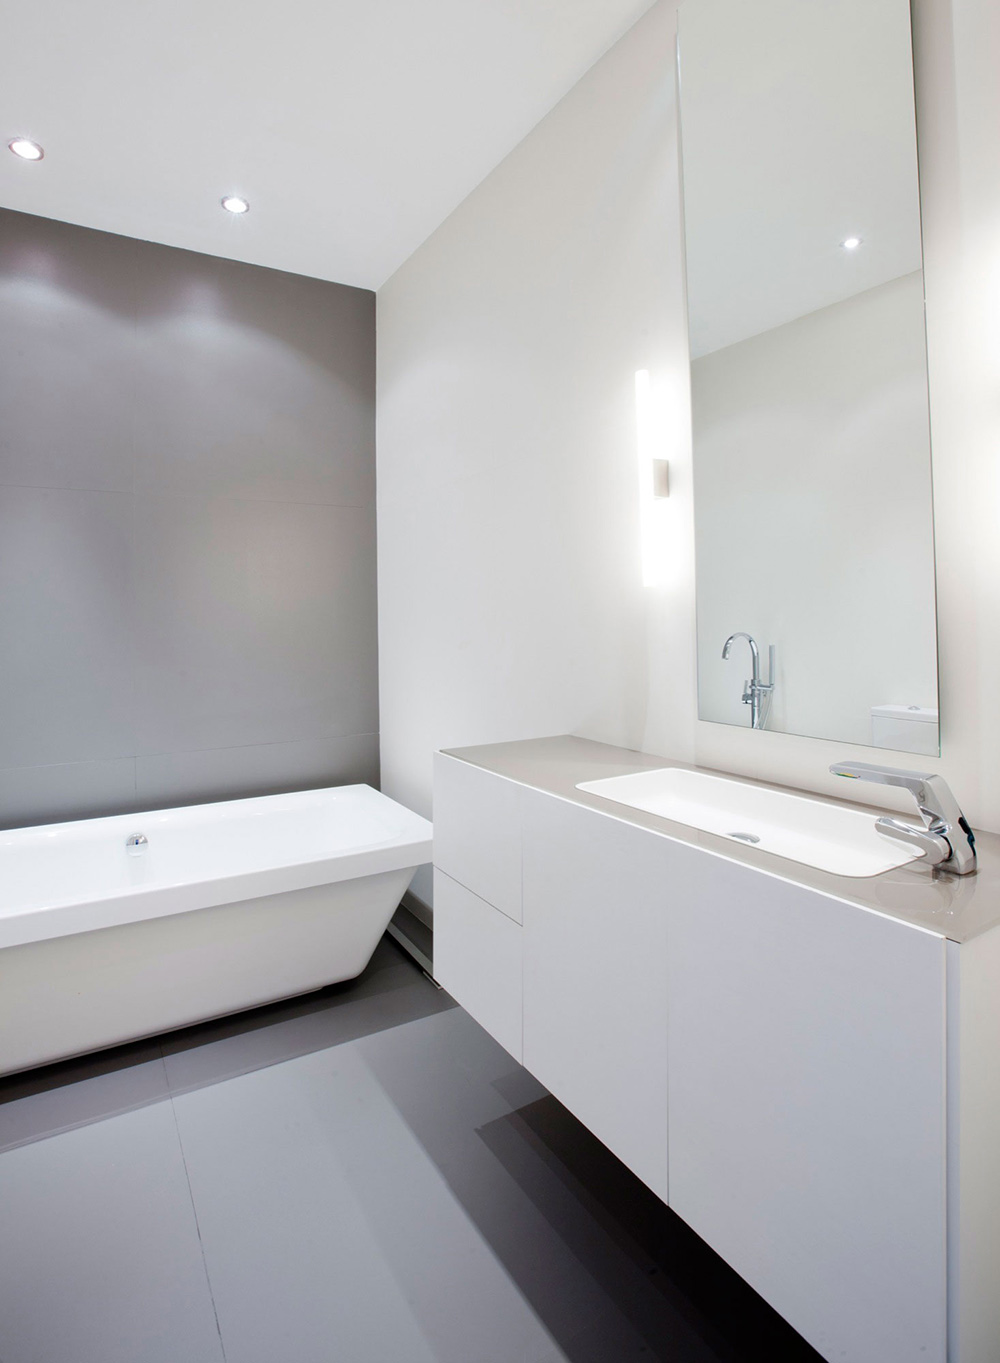 Bathroom, Mirror, Sink, Modern Apartment in Madrid Designed by IlmioDesign